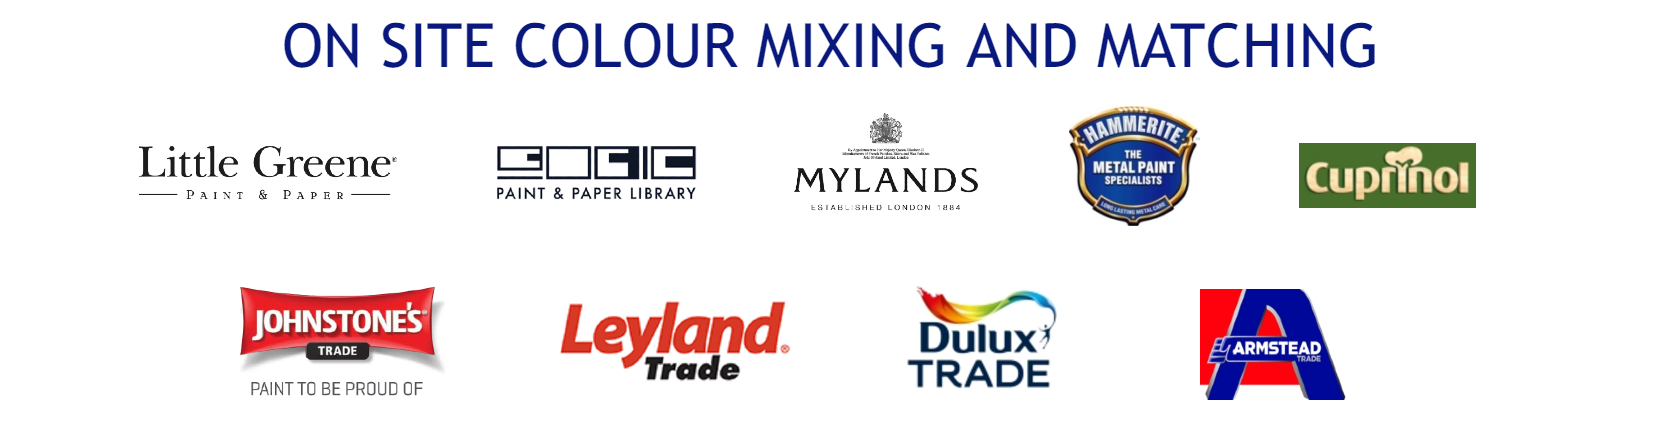 IMAGE_BANNER_COLOUR_MIXING